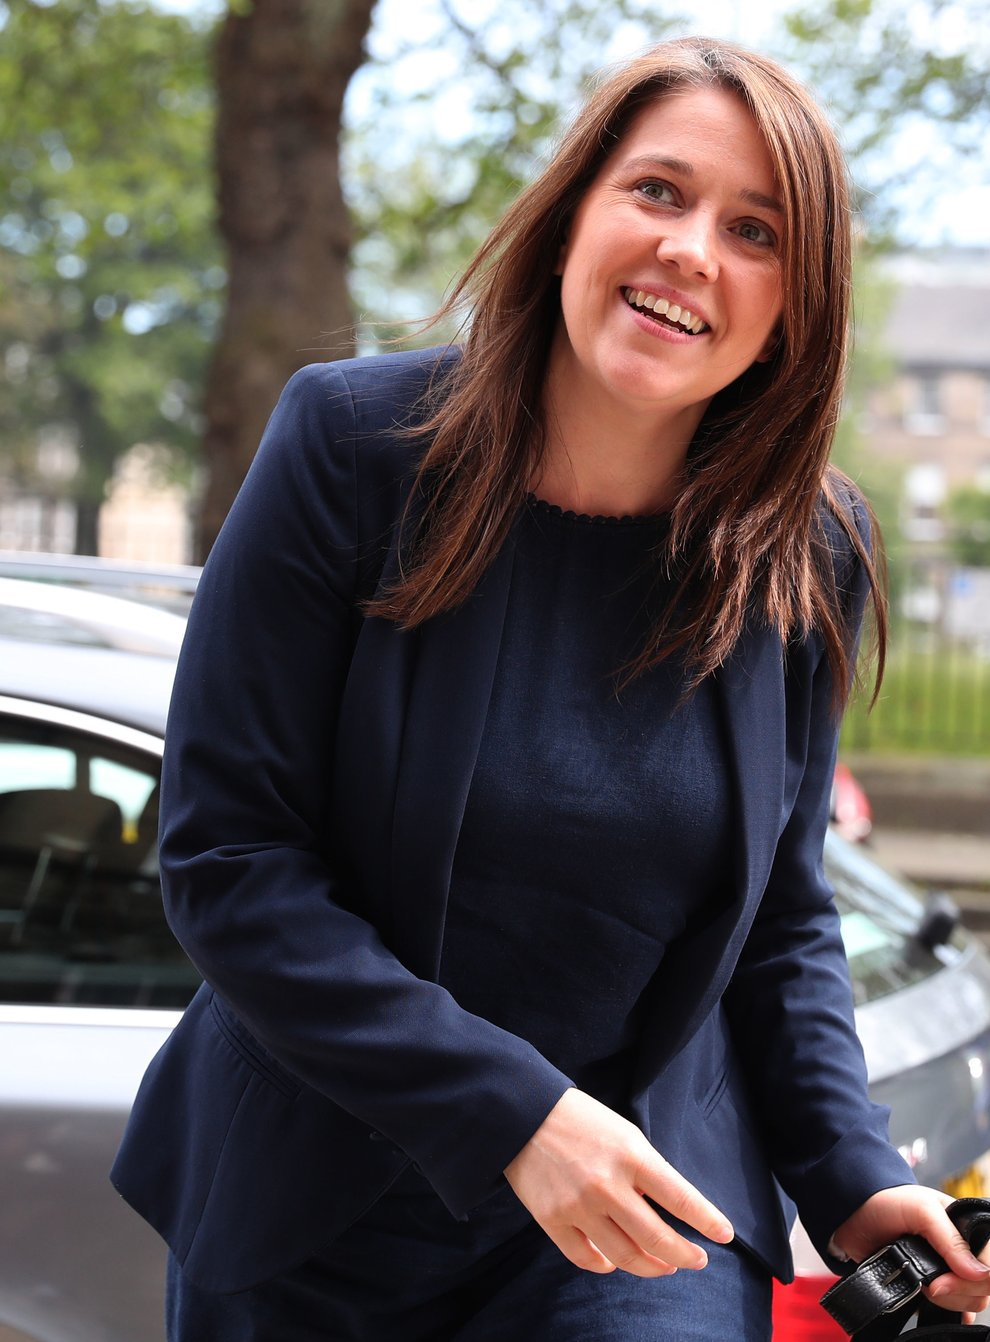 Aileen Campbell is the new CEO of Scottish Women's football